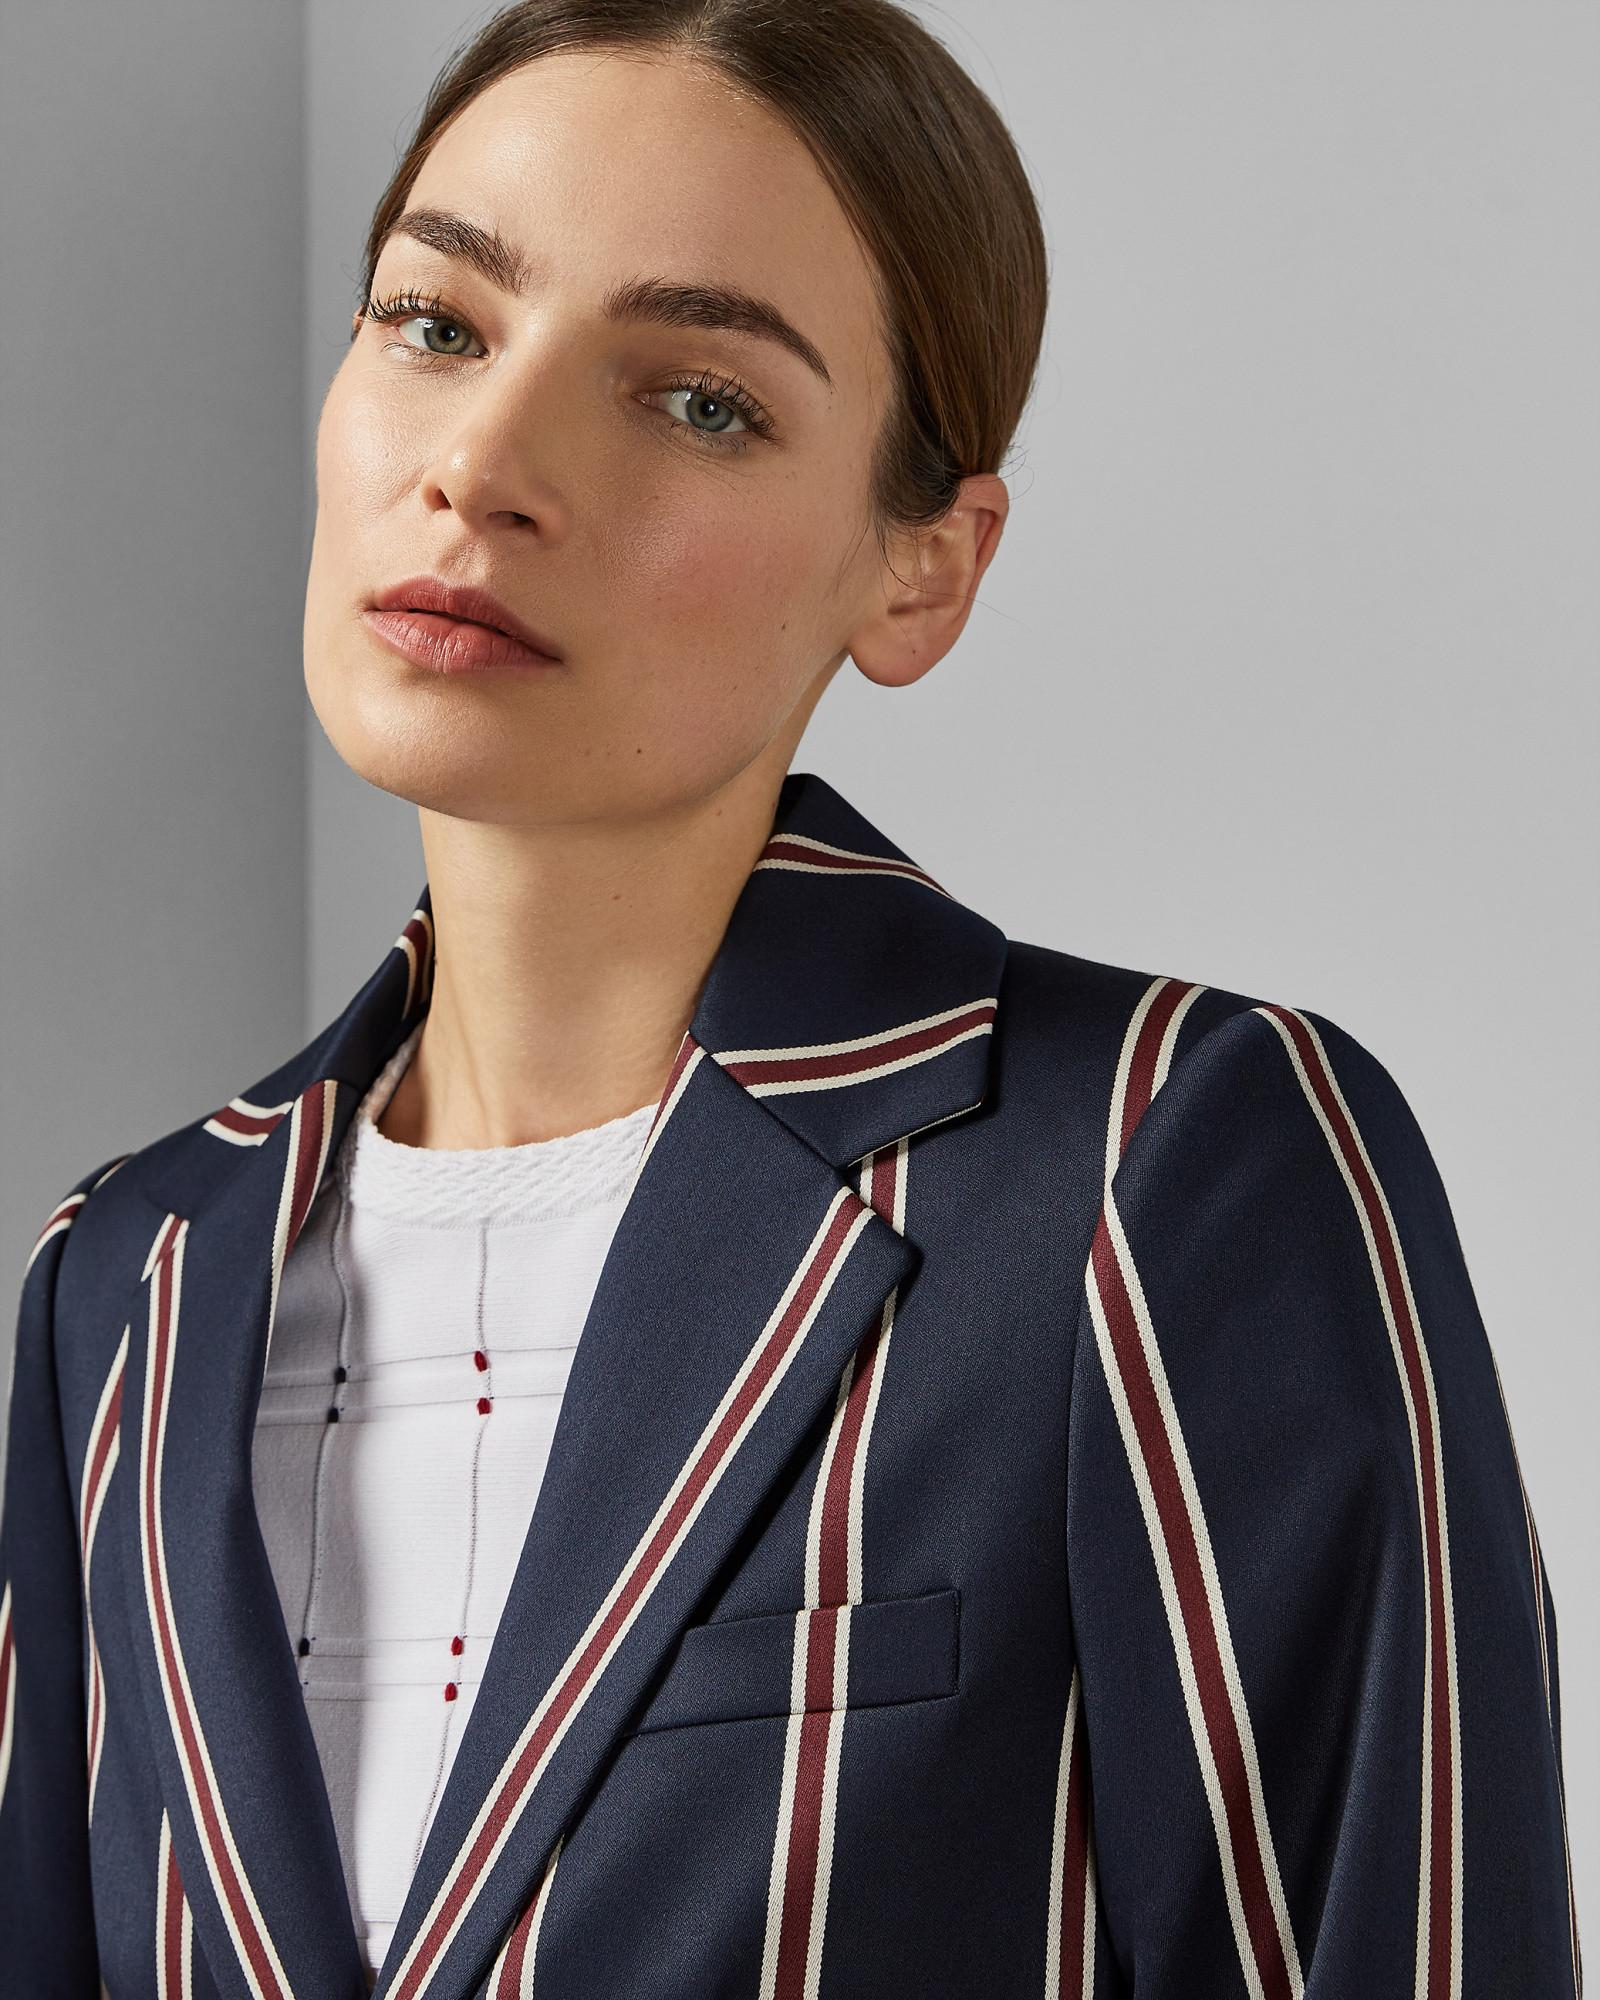 a30bbb417 Lyst - Ted Baker Striped Tailored Jacket in Blue